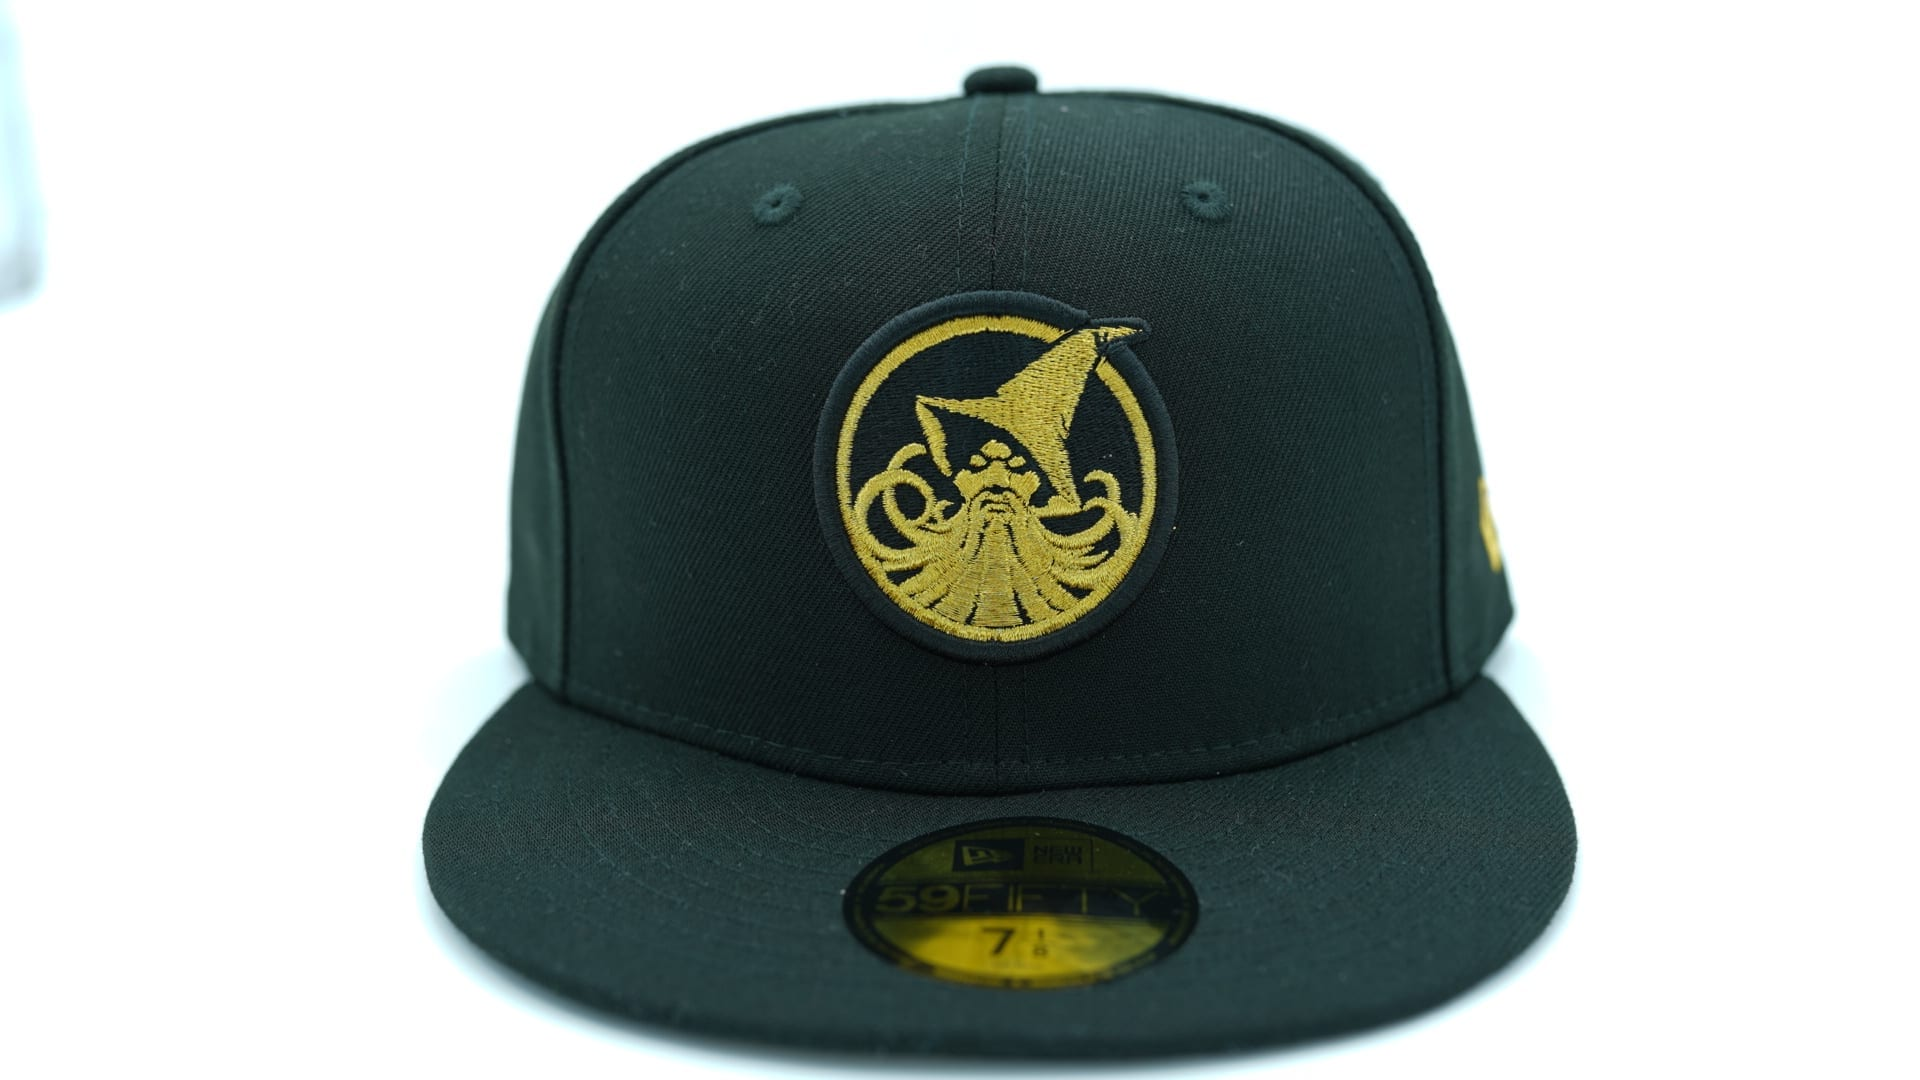 40 Acres and a Mule Logo Black 59Fifty Fitted Cap by New Era x Spike Lee